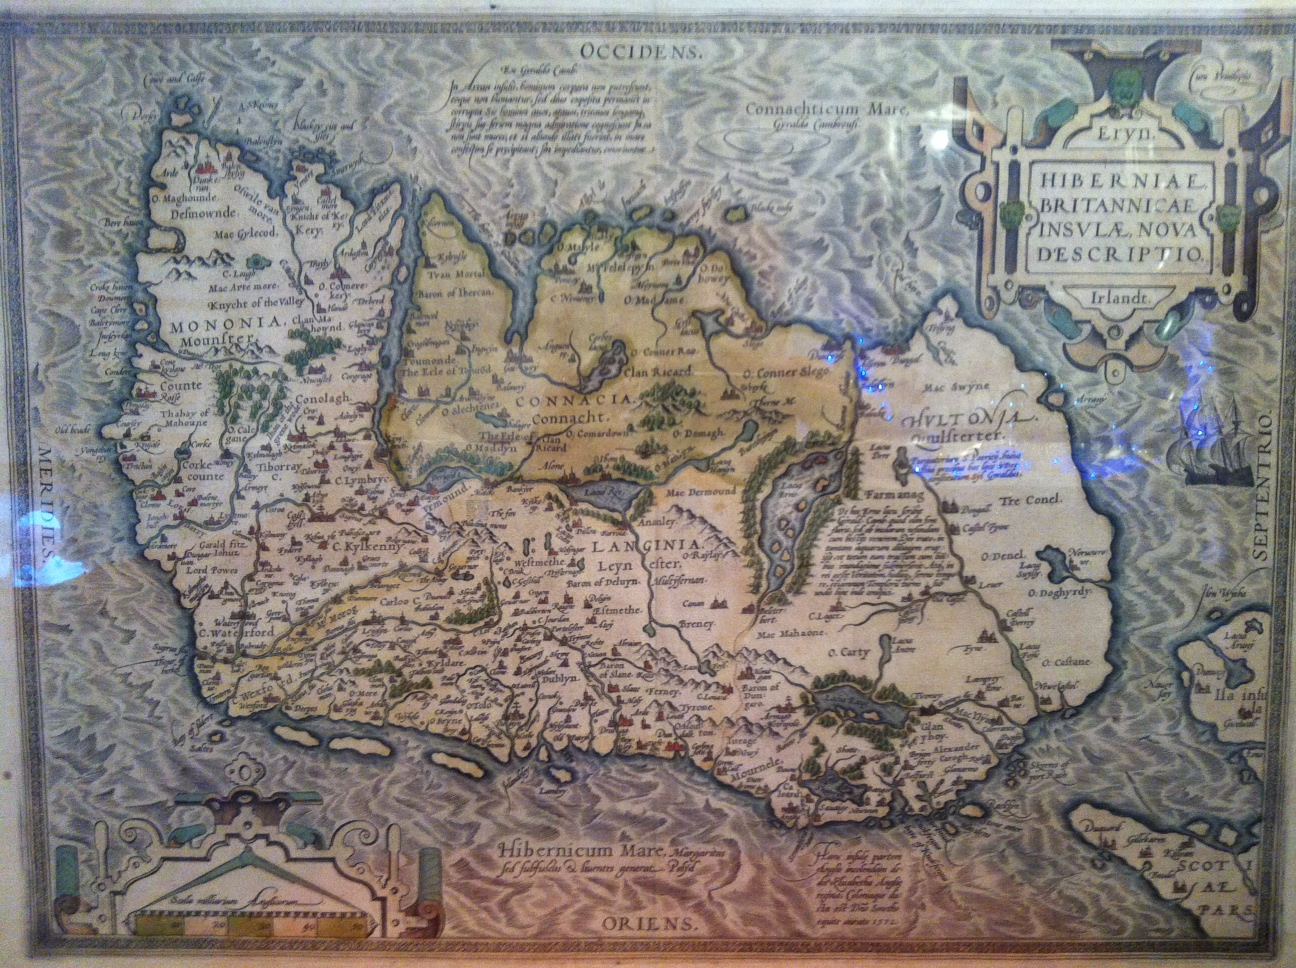 Ireland -  or Erin - a map in the sixteenth century of a land of Saints, Scholars & strangers